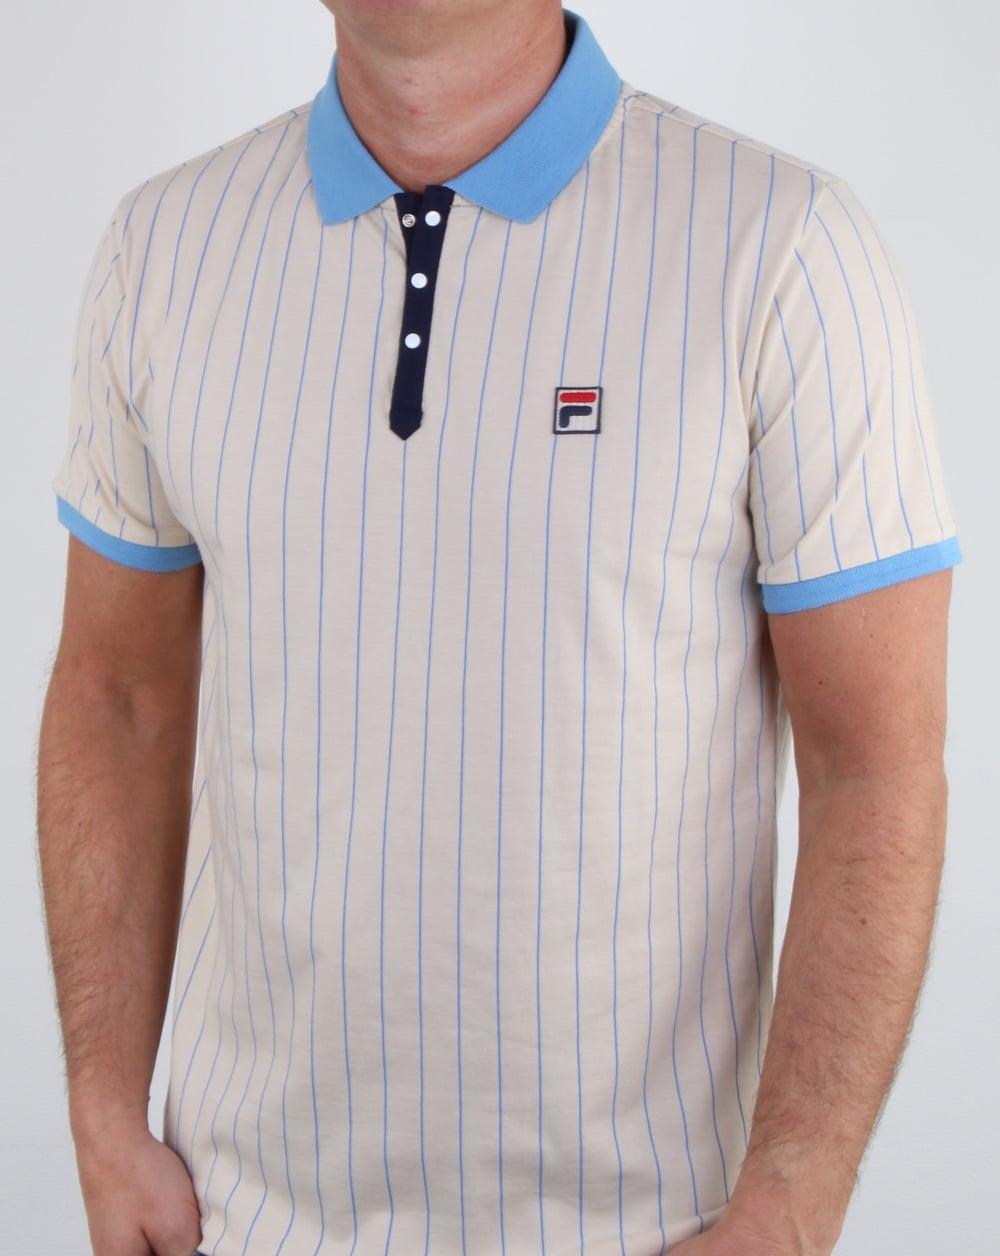 Fila Vintage Bb1 Polo Shirt Cream